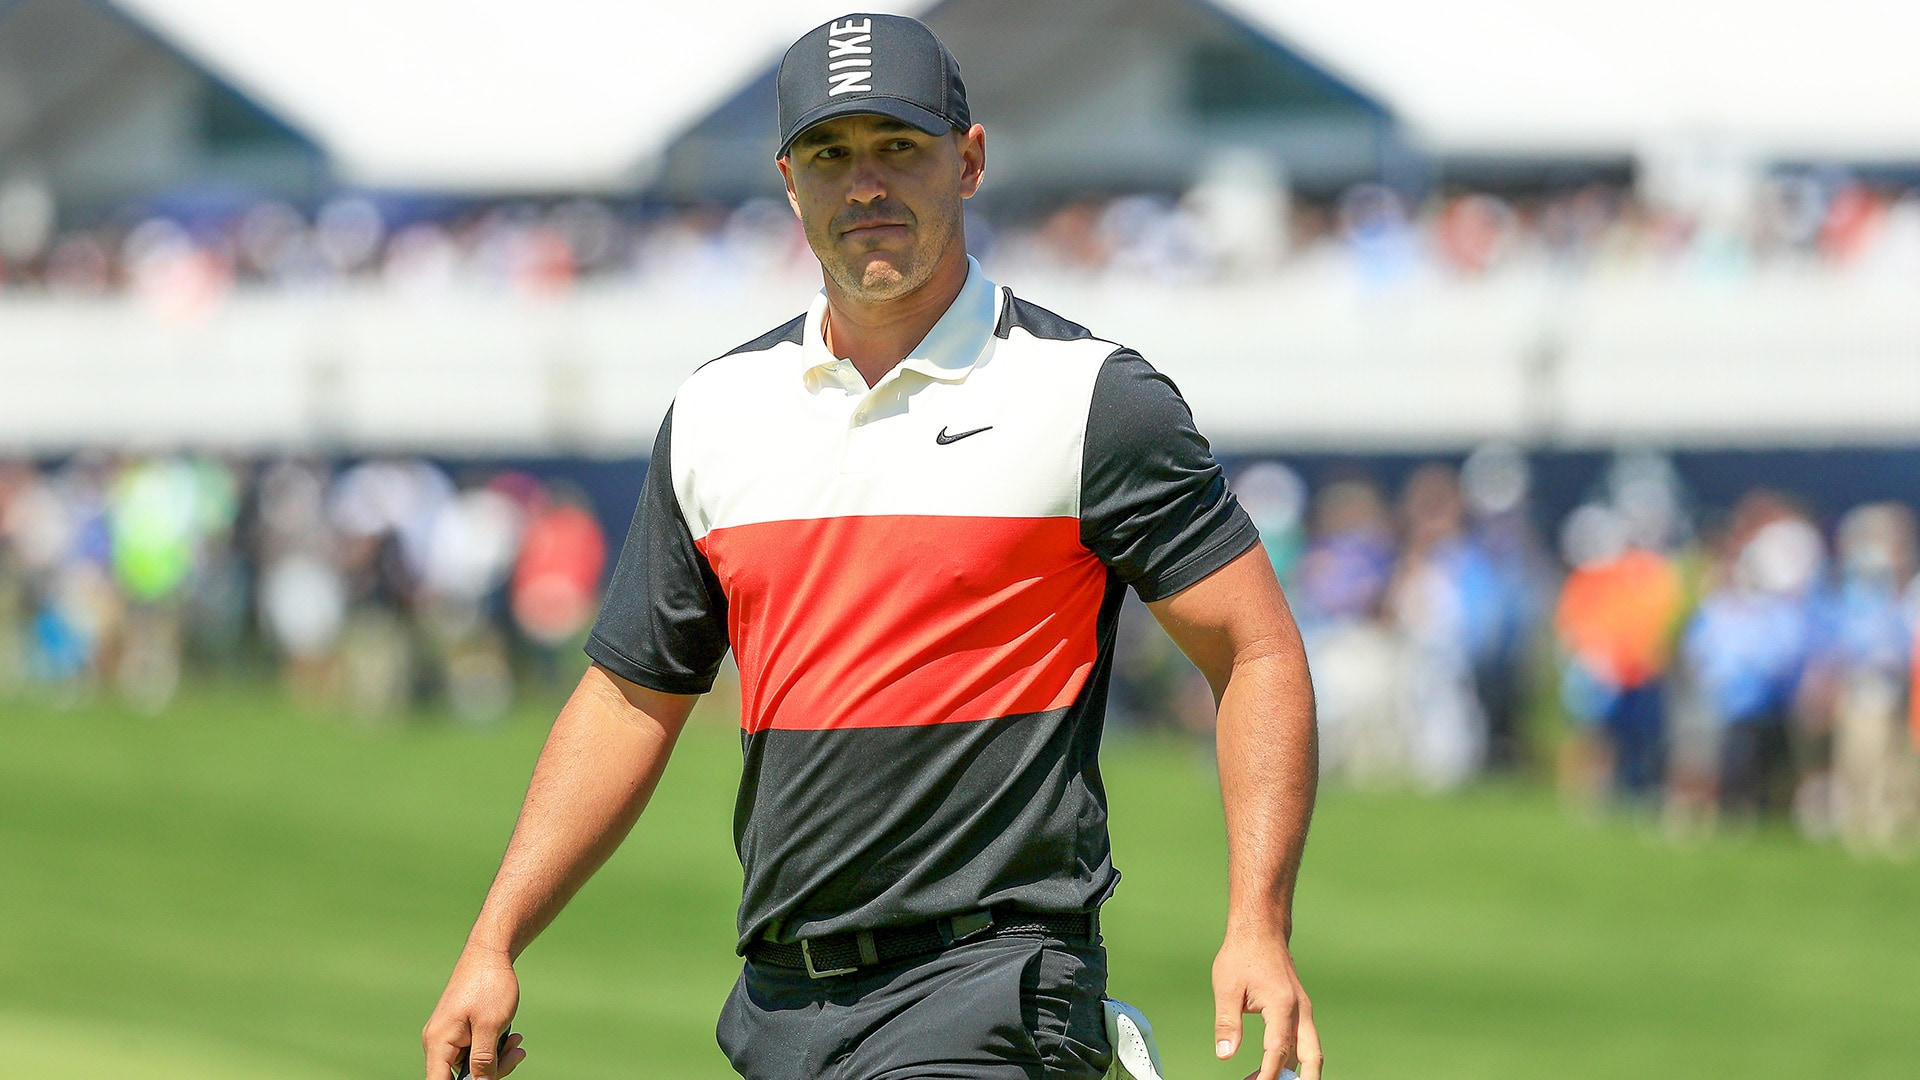 Brooks Koepka Highlights In Round 1 Of The 2019 PGA